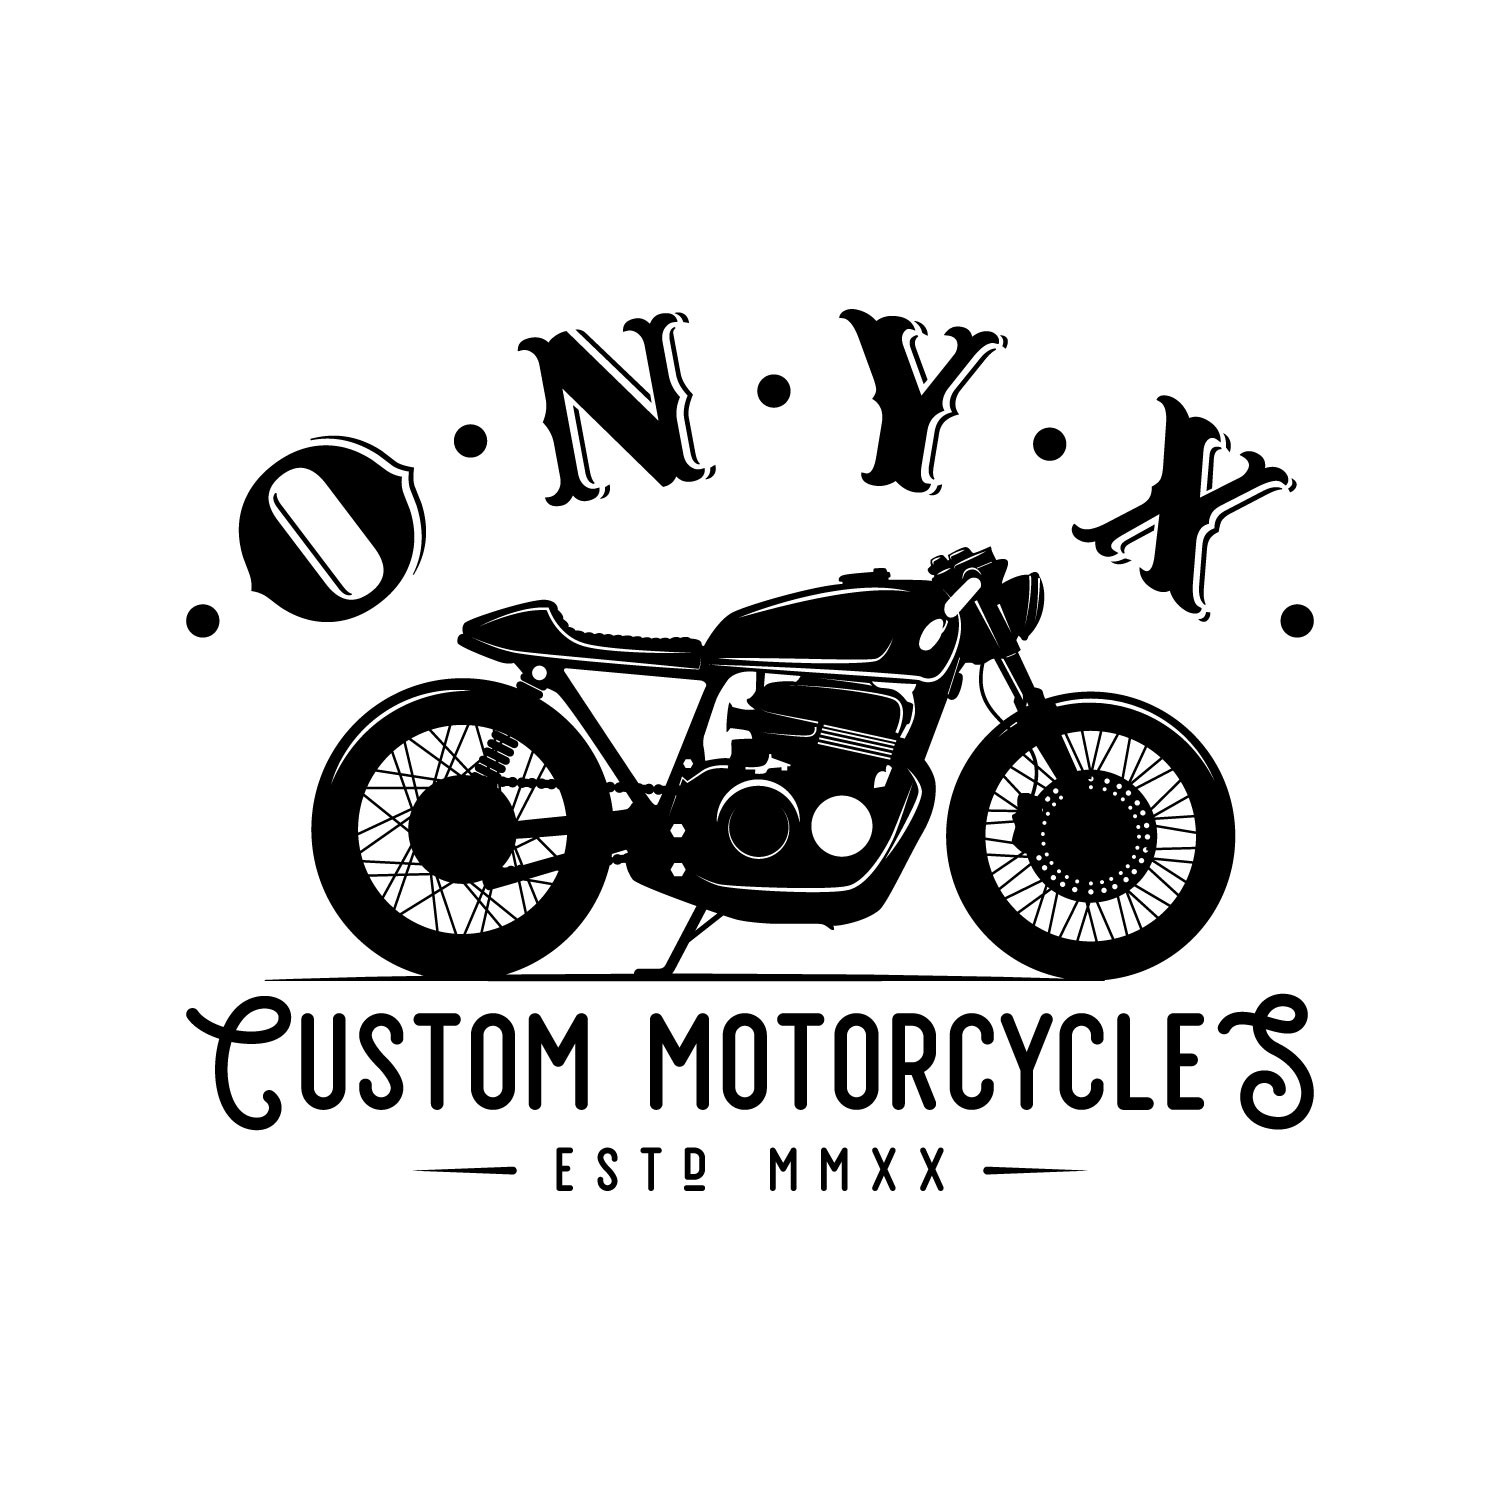 Modern classic logo for sophisticated custom motorcycle startup.